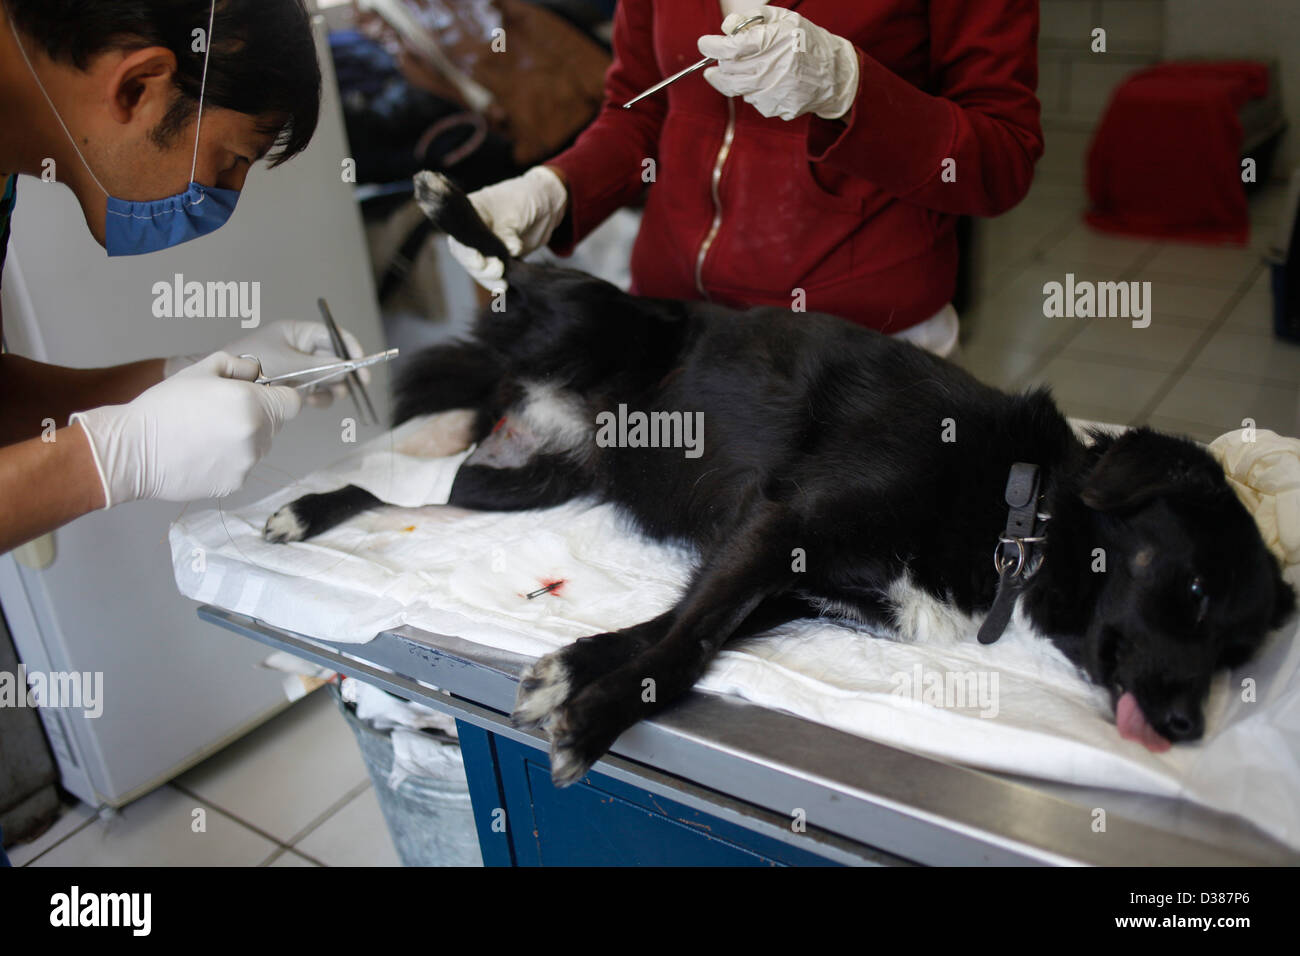 Vet treat a dog injuredat the 'Milagros Caninos,' or Canine Miracles dog sanctuary in Xochimilco, - Stock Image